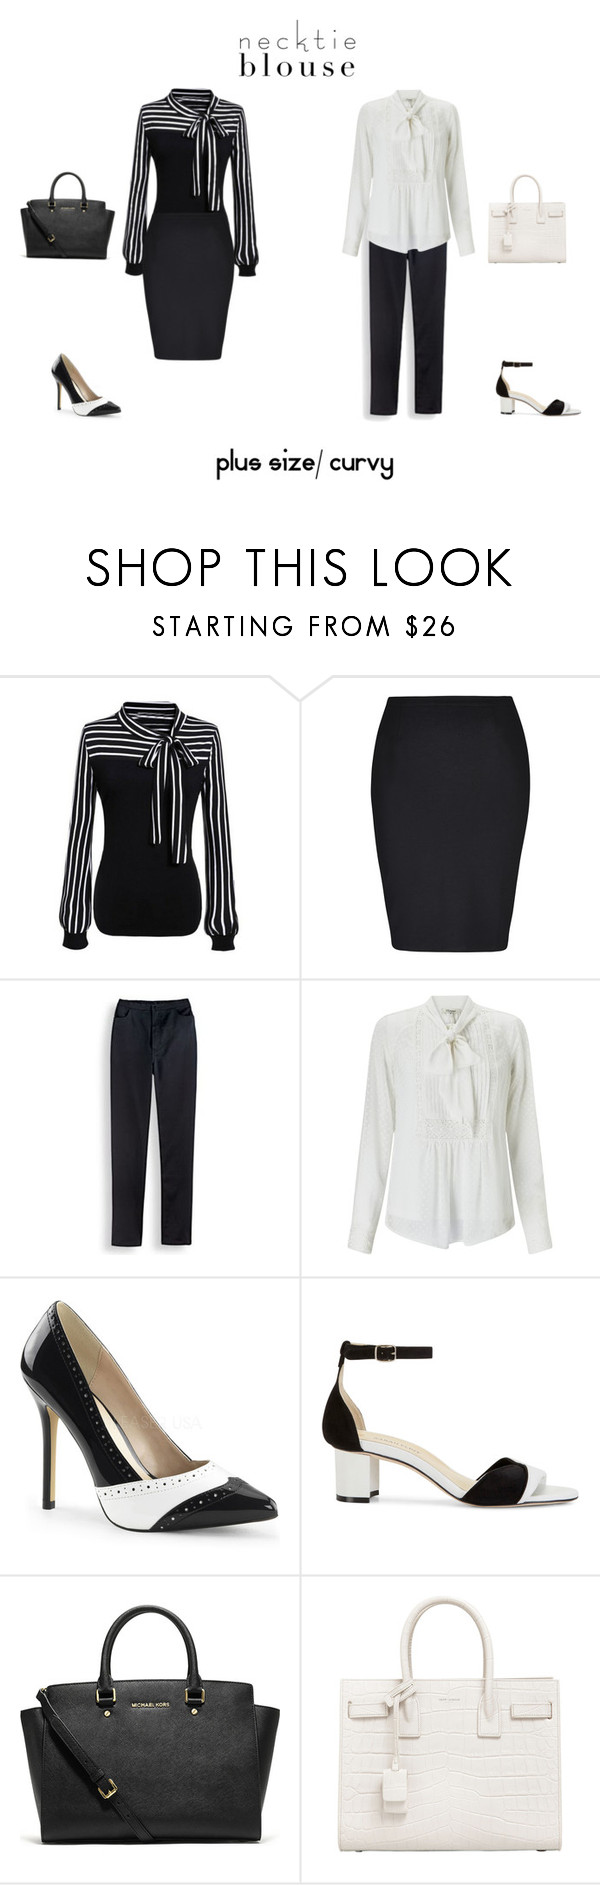 """""""Plus Size/ Curvy Necktie Blouse Outfits"""" by jessicasanderstx ❤ liked on Polyvore featuring City Chic, Blair, Somerset by Alice Temperley, Sarah Flint, Michael Kors, Yves Saint Laurent and necktieblouse"""